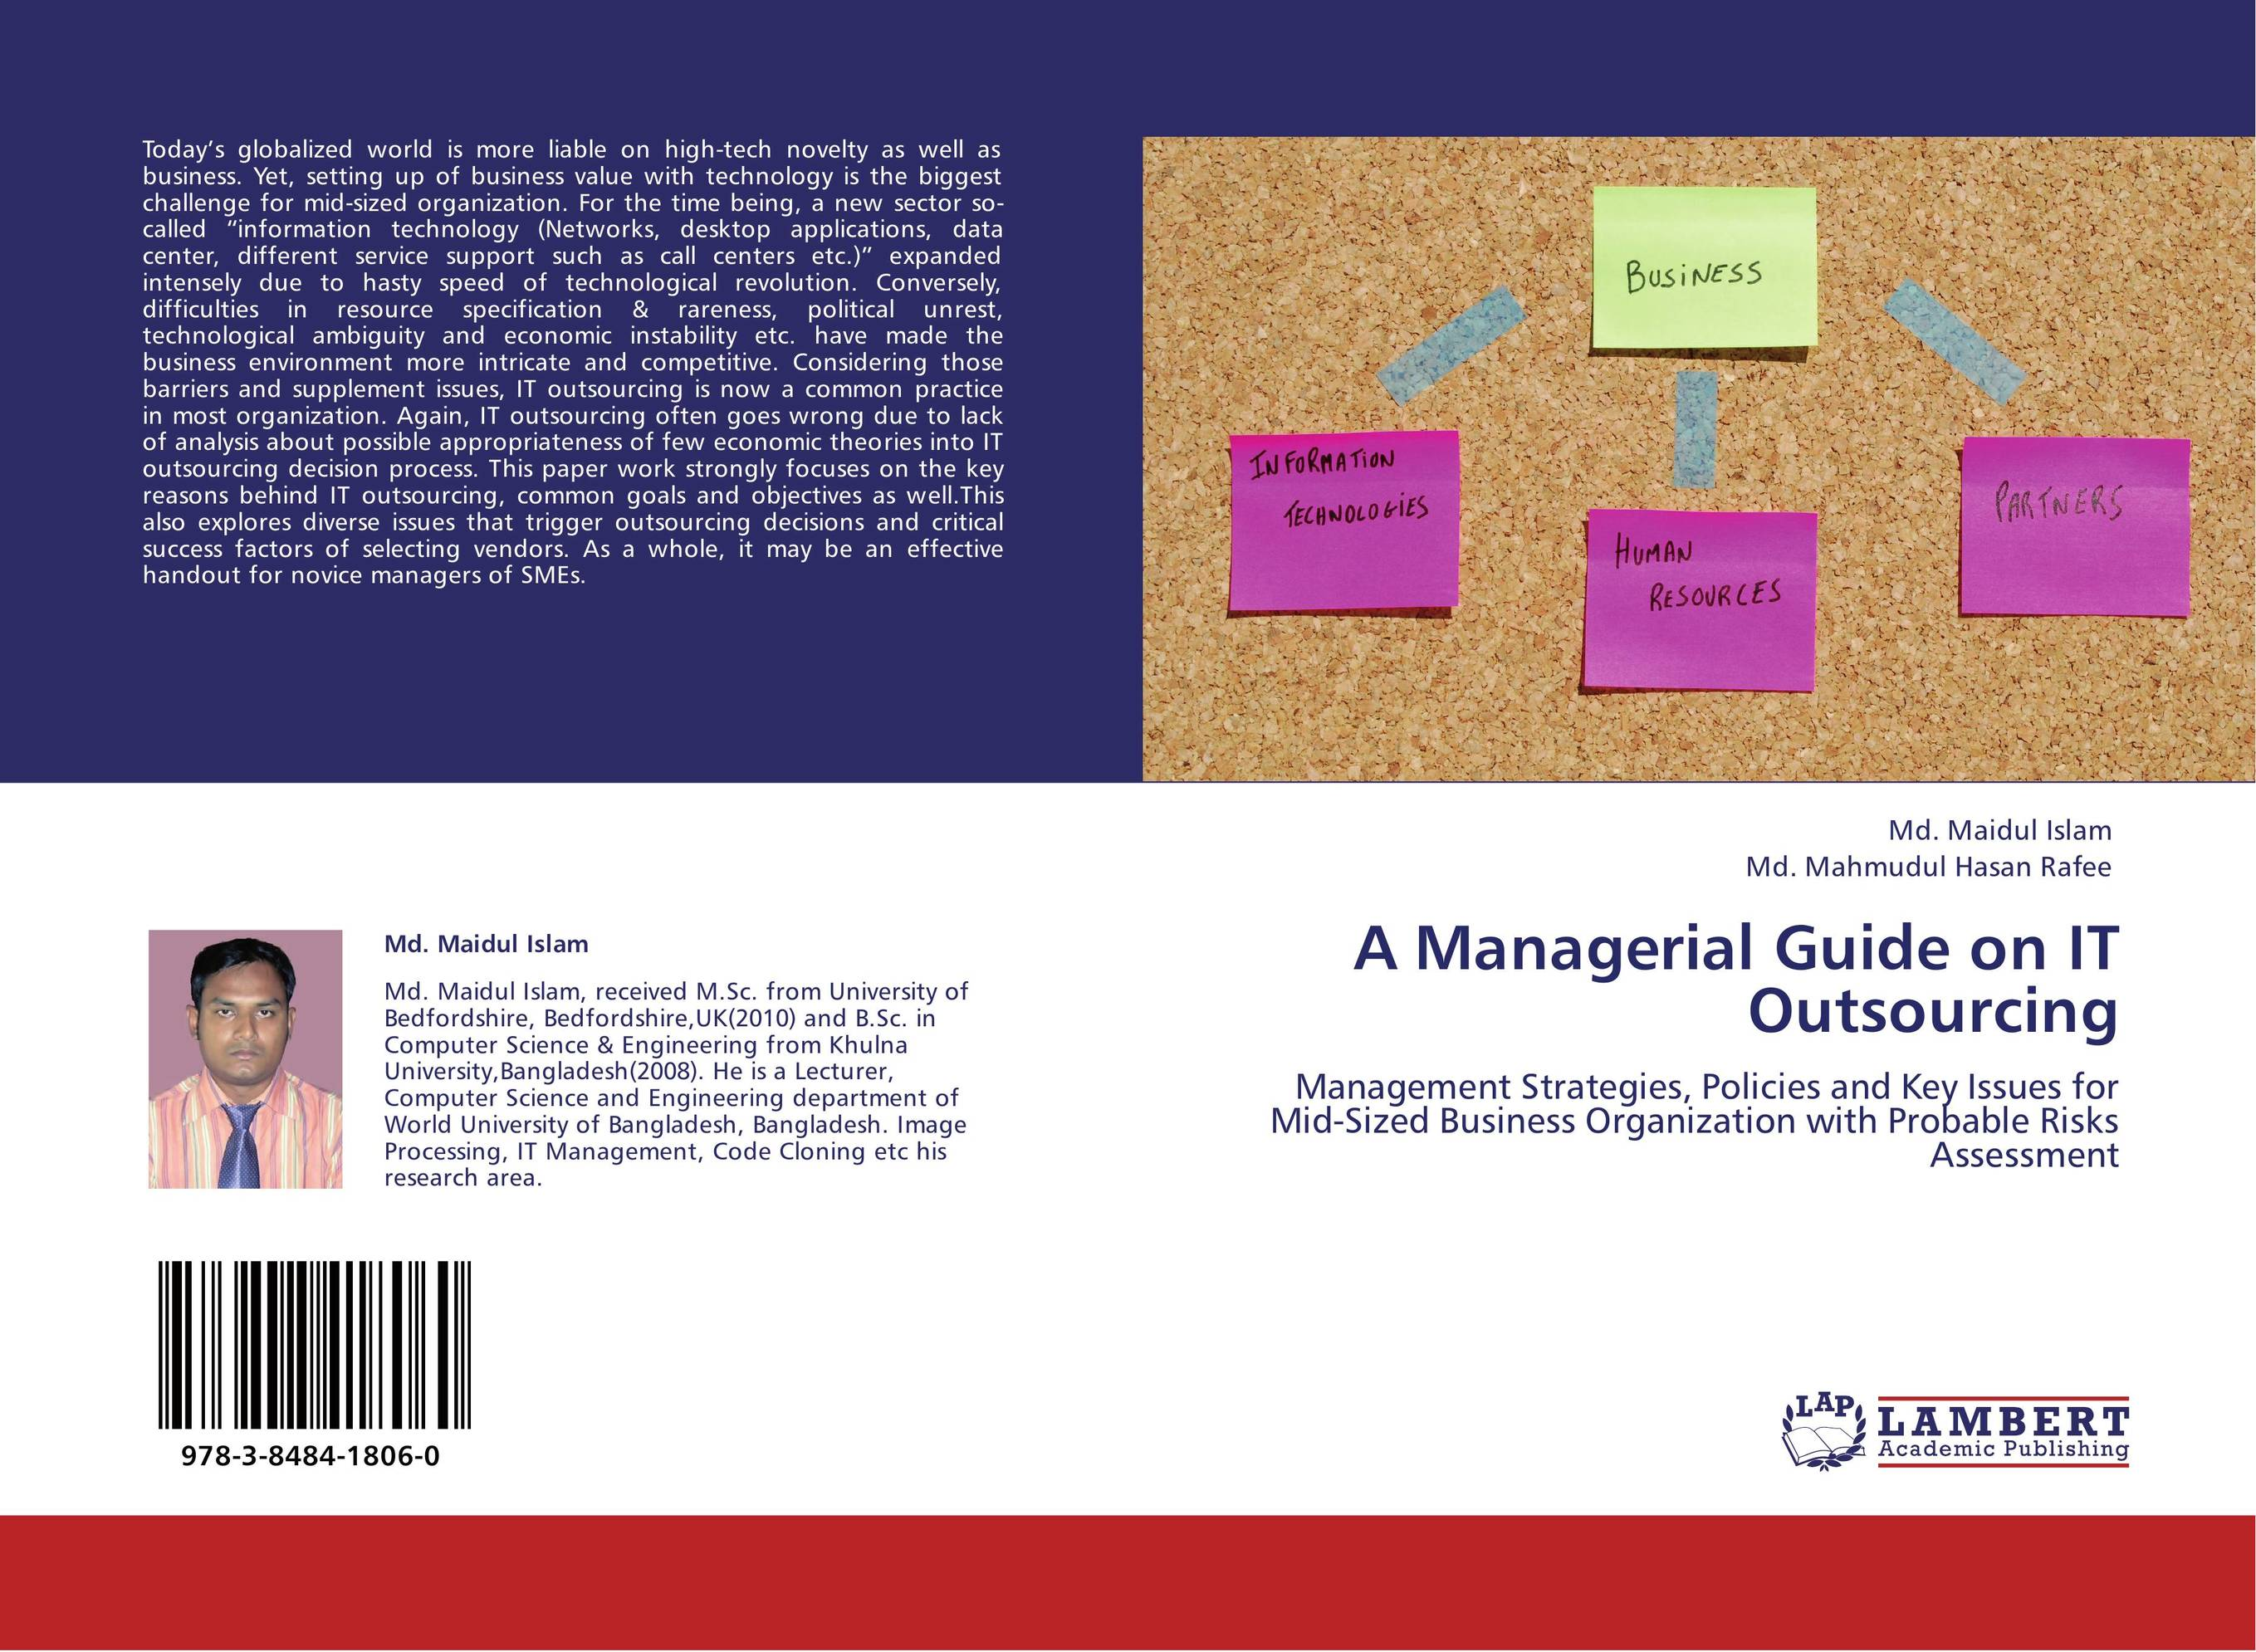 a description of outsourcing as a management strategy that helps organisations Strategic hr planning is an important component of strategic hr management it links hr management directly to the strategic plan of your organization most mid- to large sized organizations have a strategic plan that guides them in successfully meeting their missions.